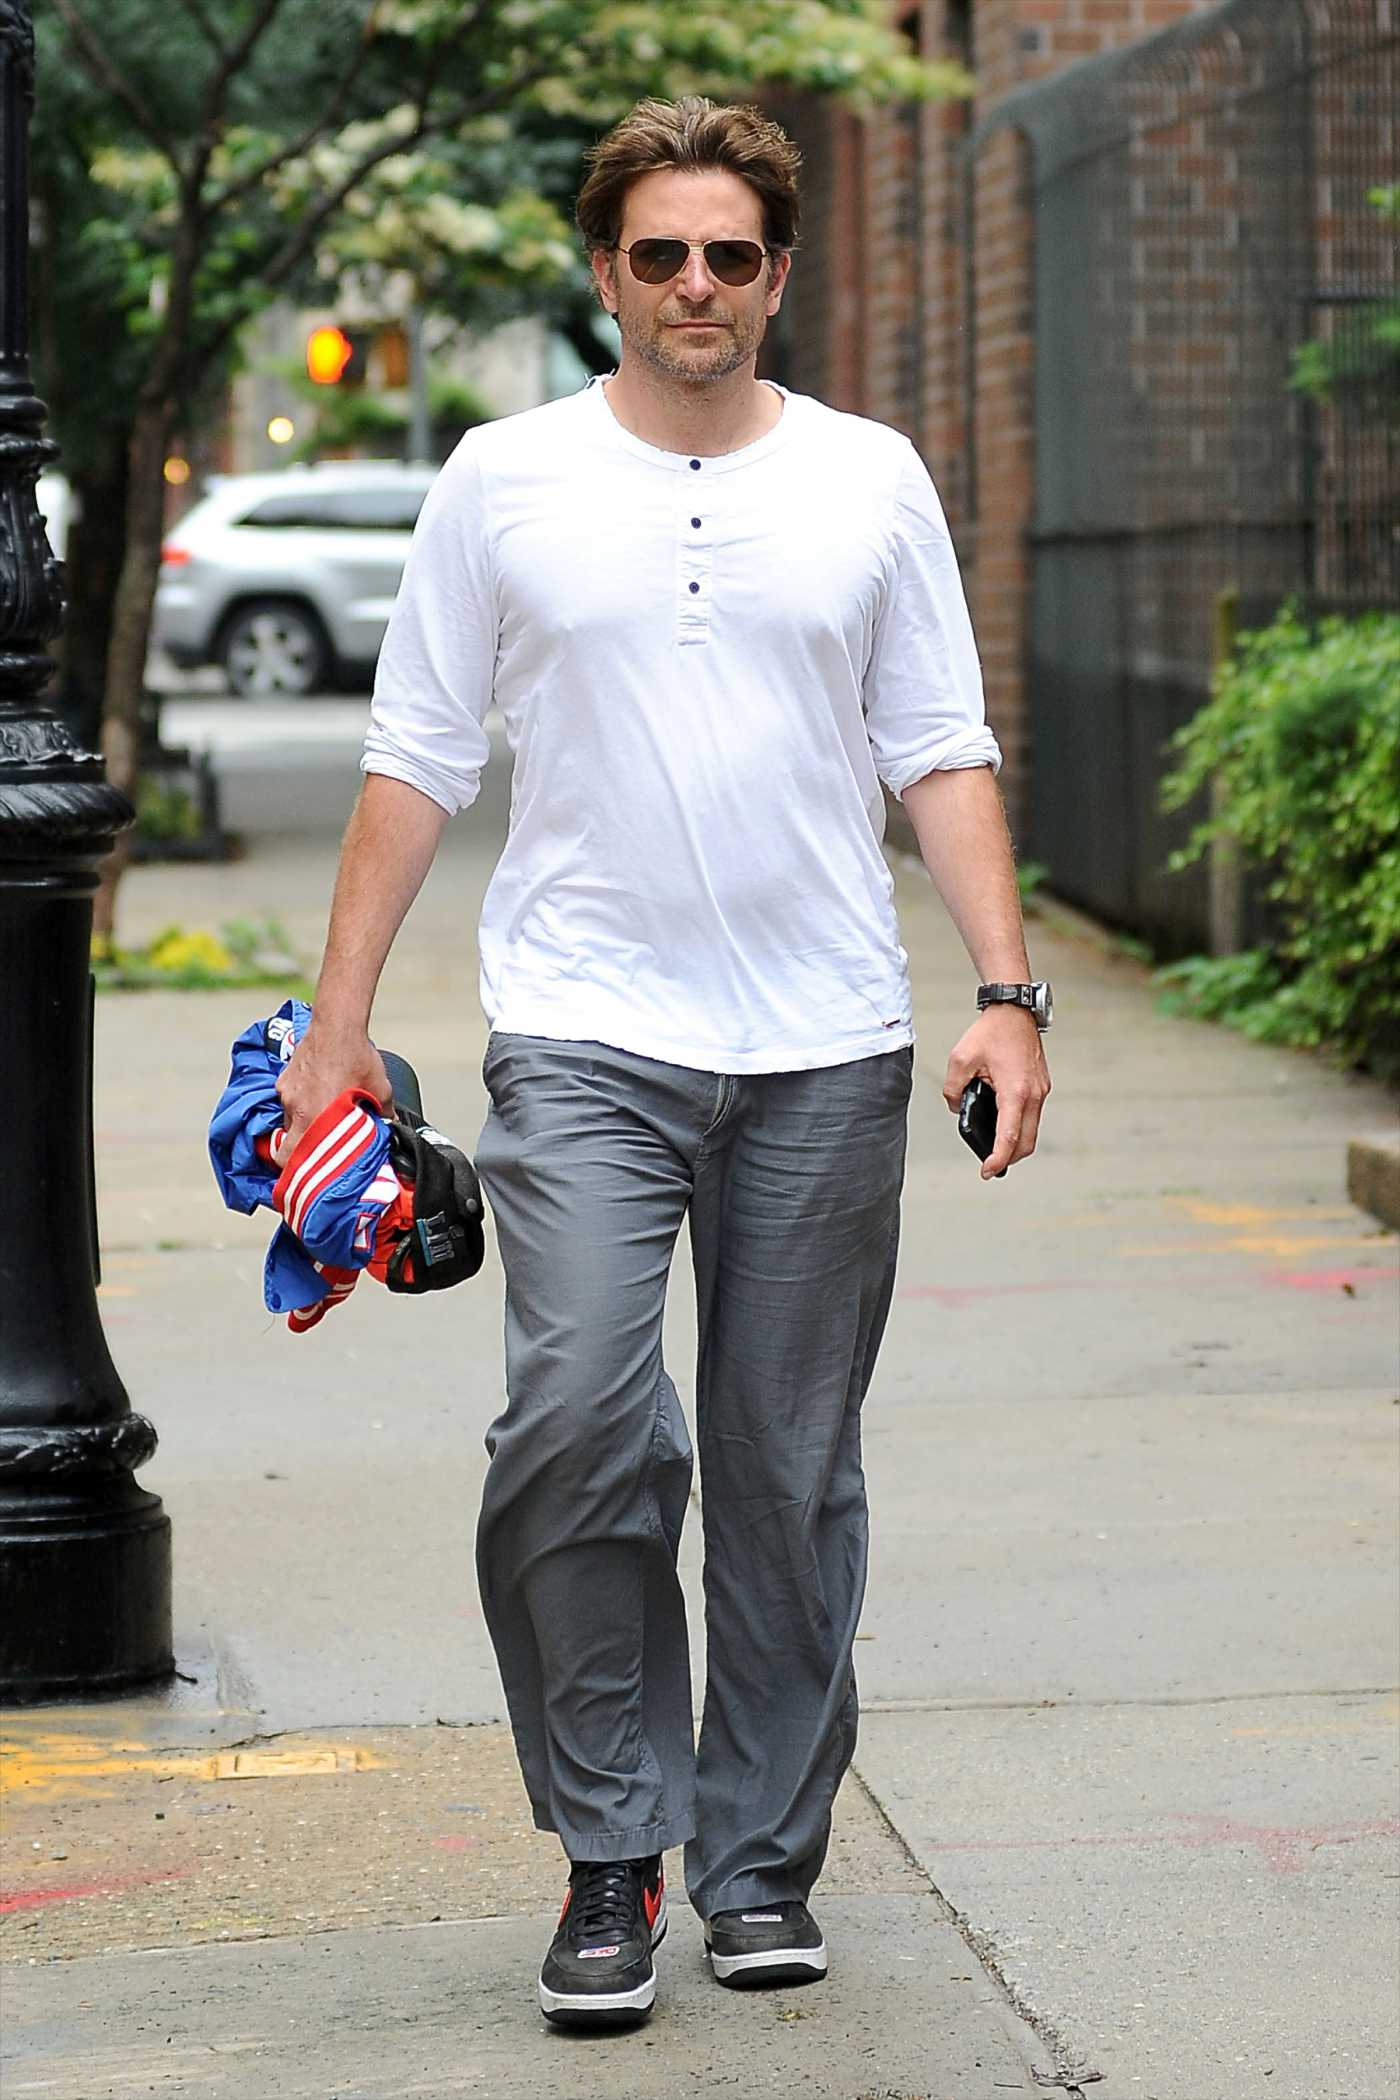 Bradley Cooper in a White Long Sleeves T-Shirt Was Seen Out in New York 06/18/2019